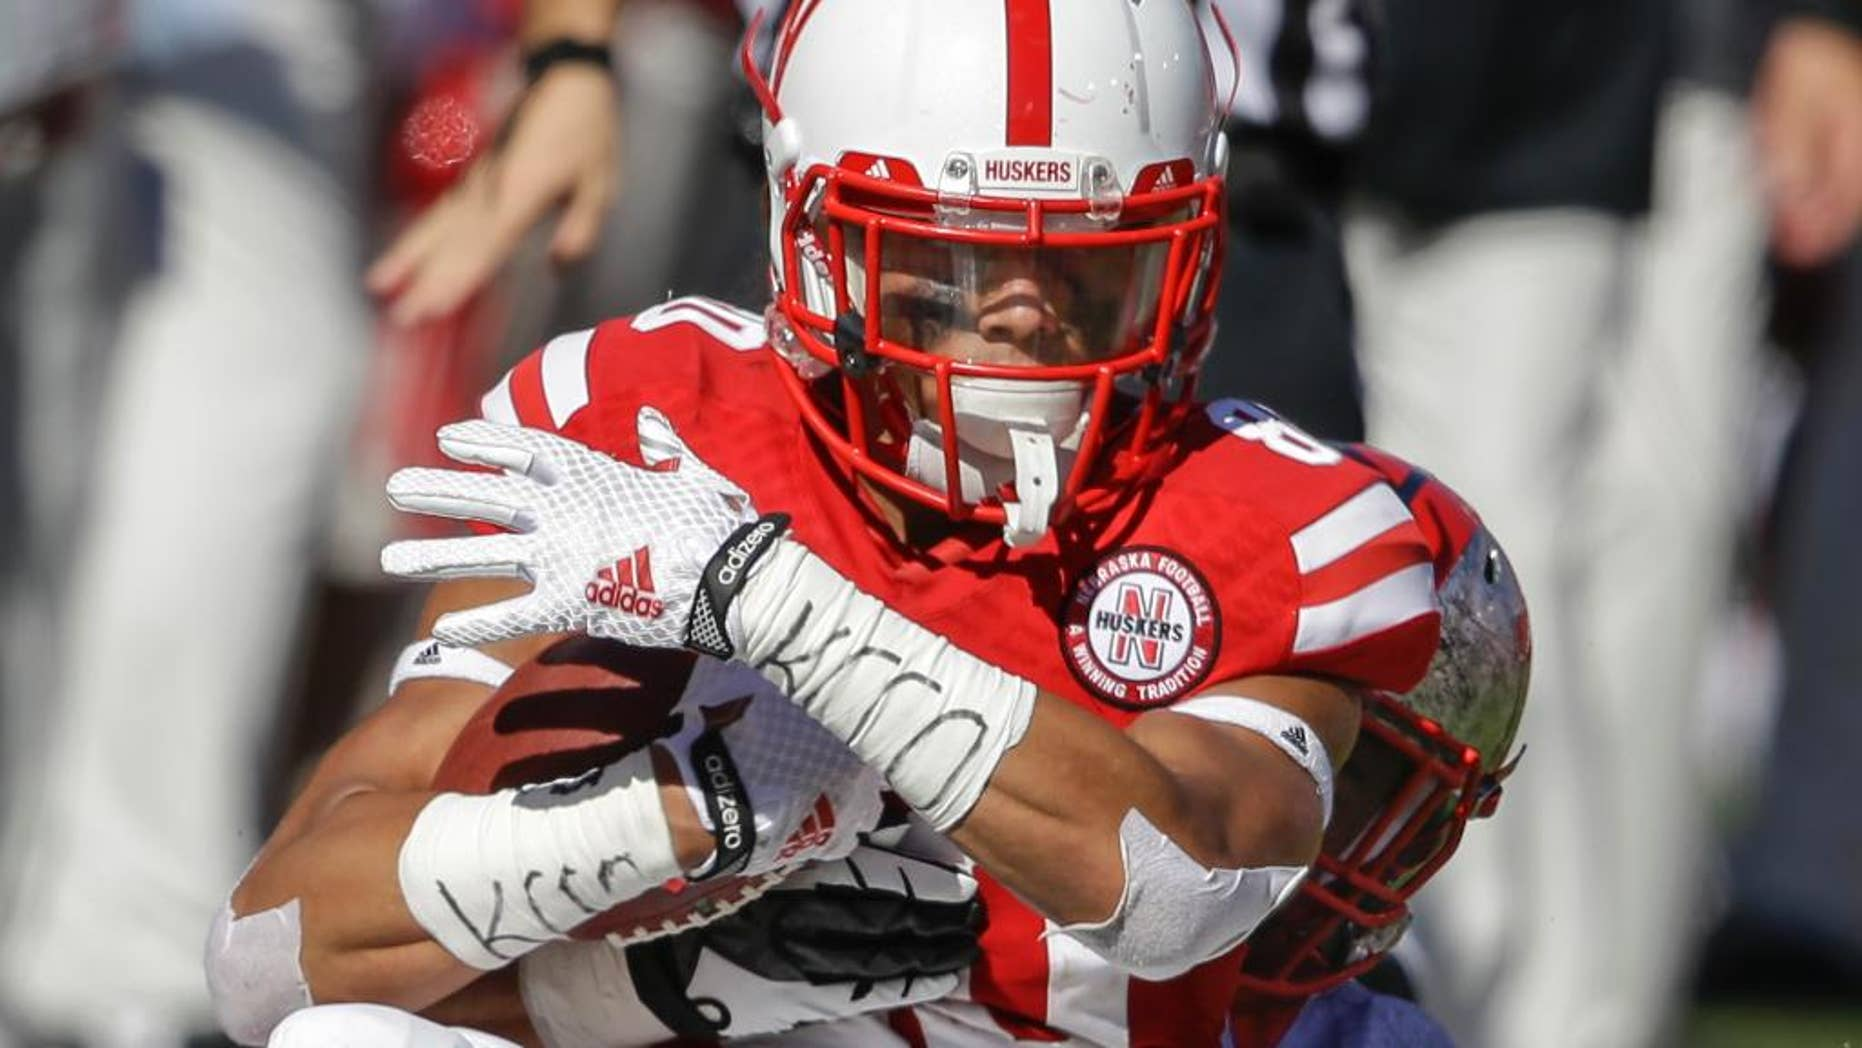 Nebraska wide receiver Kenny Bell, front, is tackled by Rutgers defensive back Andre Hunt after Bell made a catch, in the second half of an NCAA college football game in Lincoln, Neb., Saturday, Oct. 25, 2014. Bell enjoys throwing downfield blocks as much as catching passes. (AP Photo/Nati Harnik)